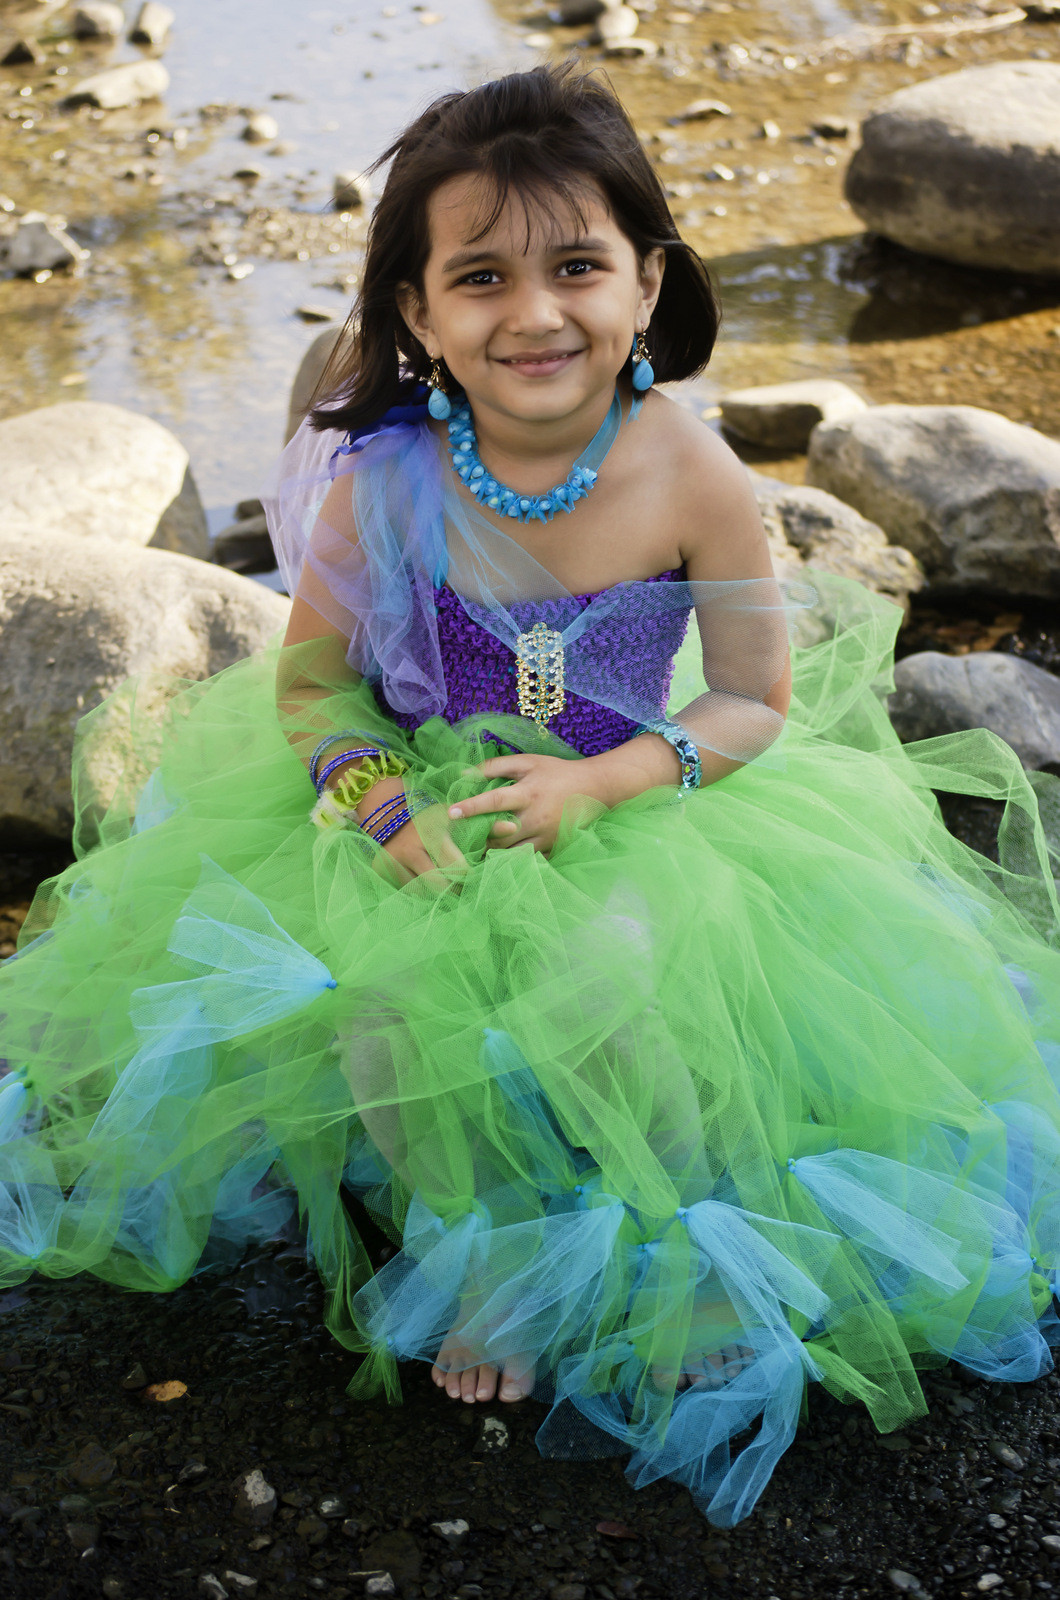 Best ideas about DIY Mermaid Halloween Costumes . Save or Pin by Ami Mathur graphy Now.